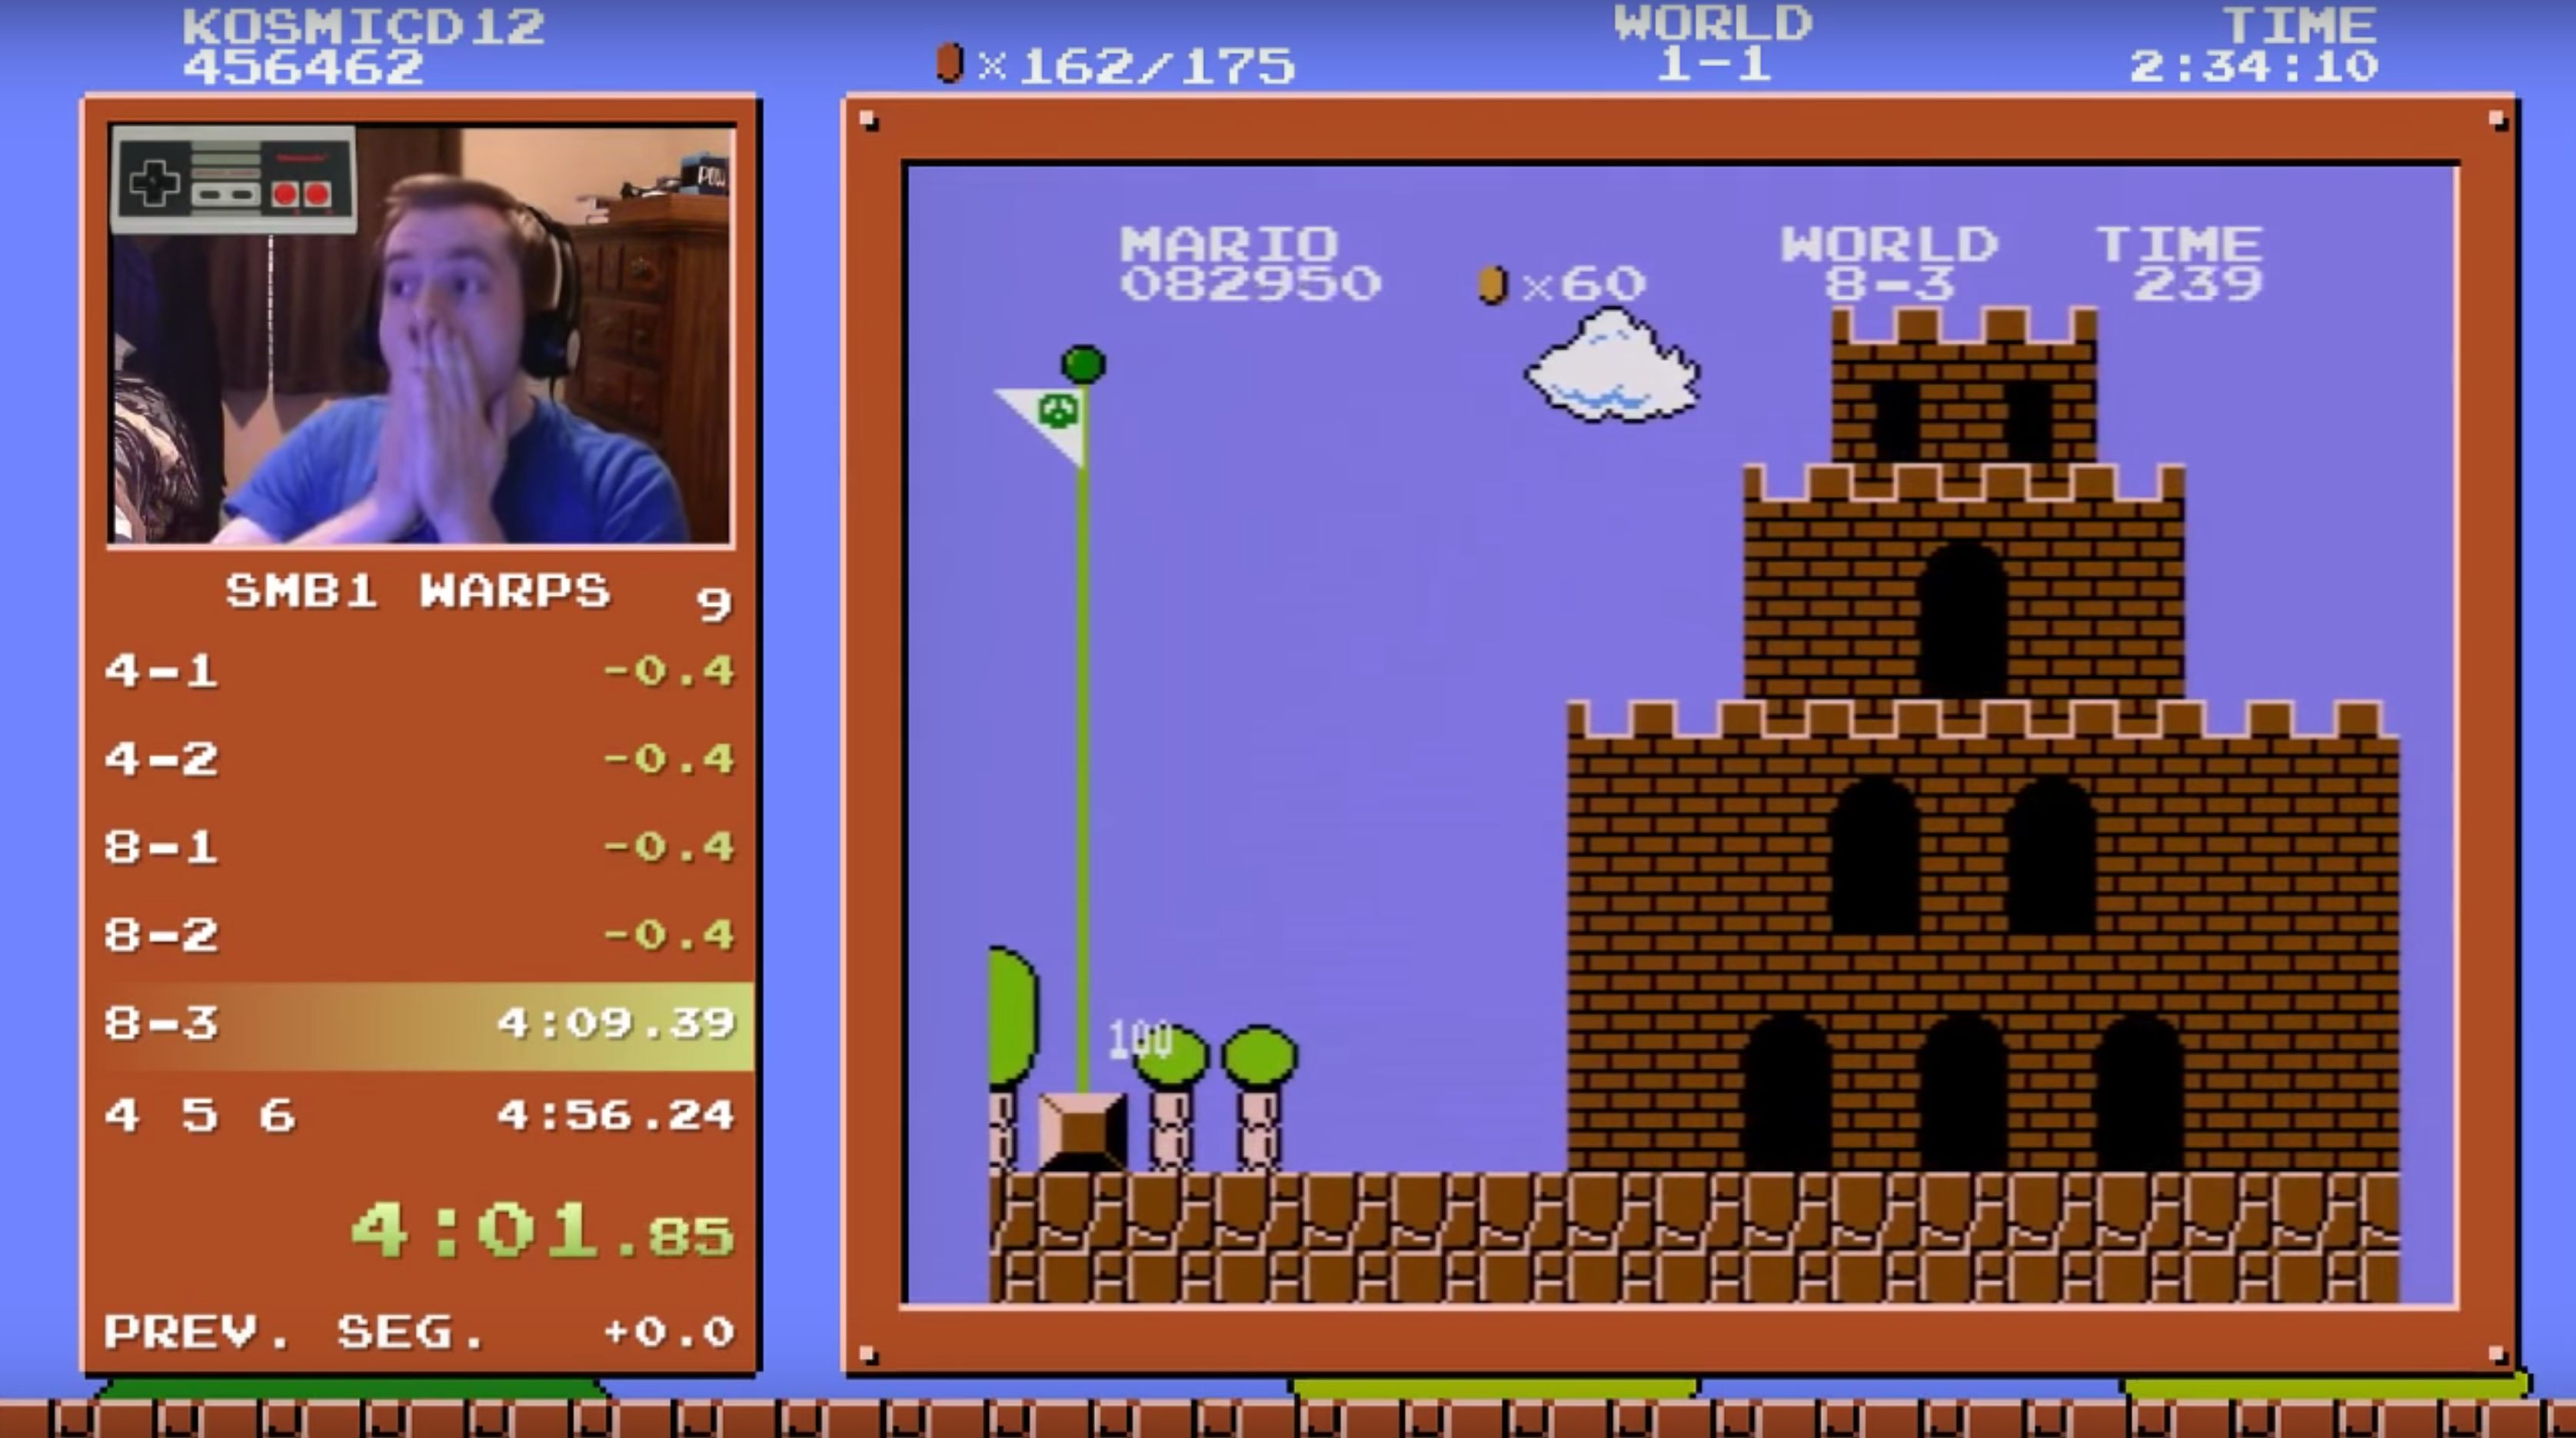 This Gamer Beat 'Super Mario Bros.' In A World Record Time Many Thought